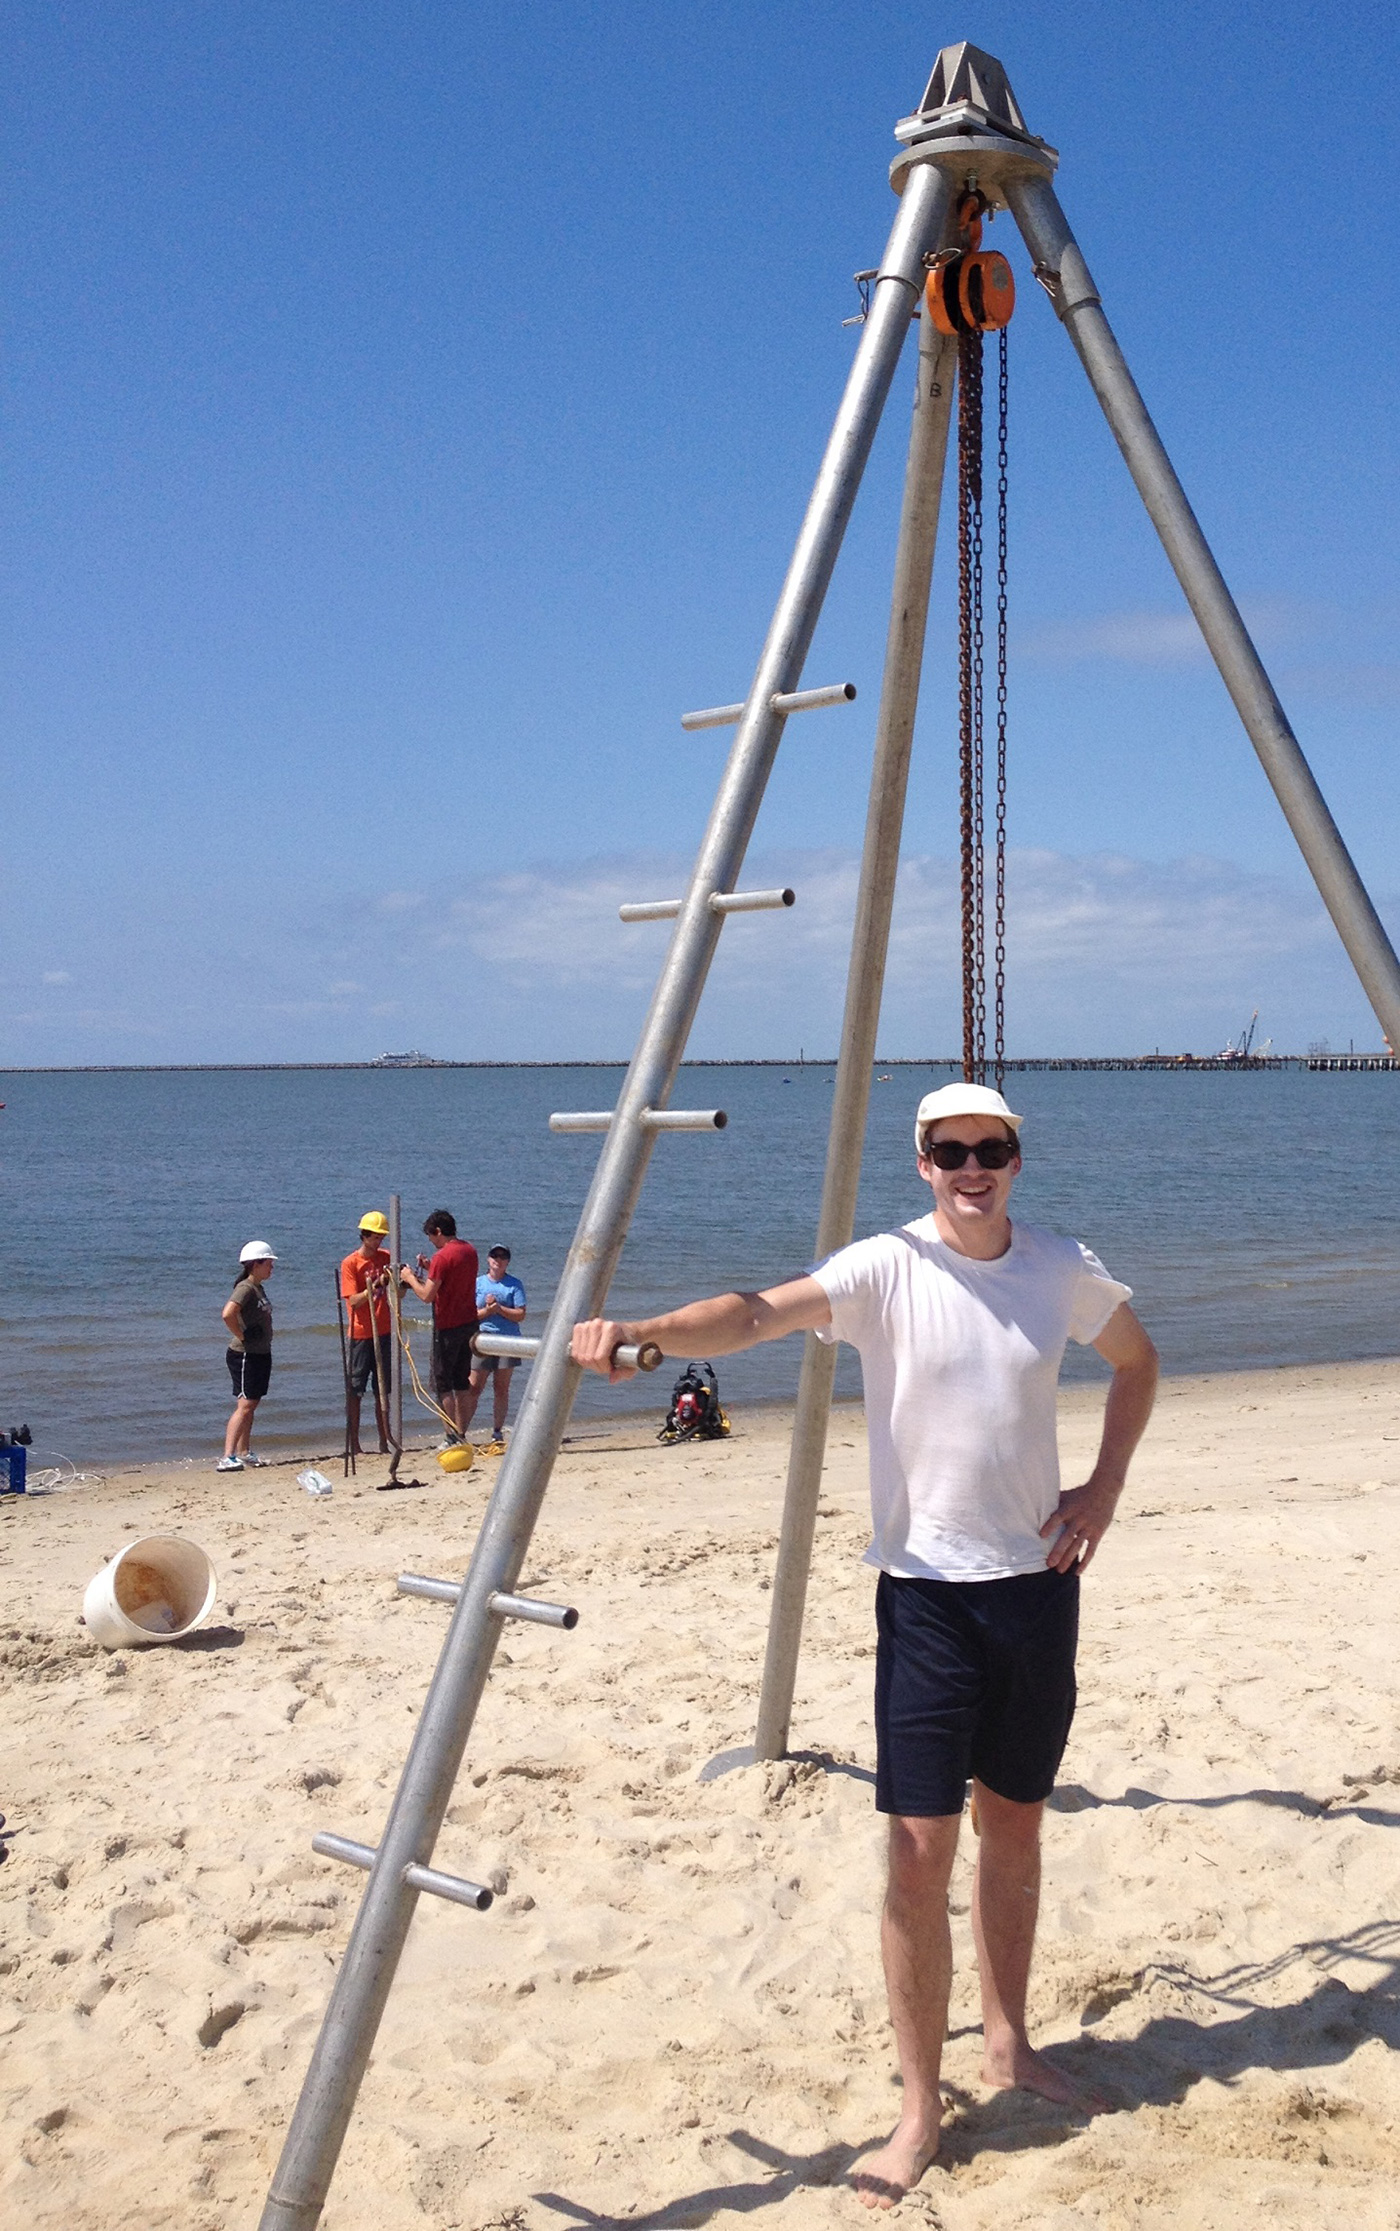 Assistant Professor James Heiss poses next to equipment at a beach. Heiss' research area is coastal groundwater dynamics and nutrient cycling in nearshore aquifers. I am interested in the influence of land-sea processes (tides, sea level rise, terrestrial recharge) on the exchange of water and chemicals between groundwater and surface water in estuarine, beach, bay, marsh, and marine environments. This work has direct implications for groundwater resources and water quality of coastal systems.